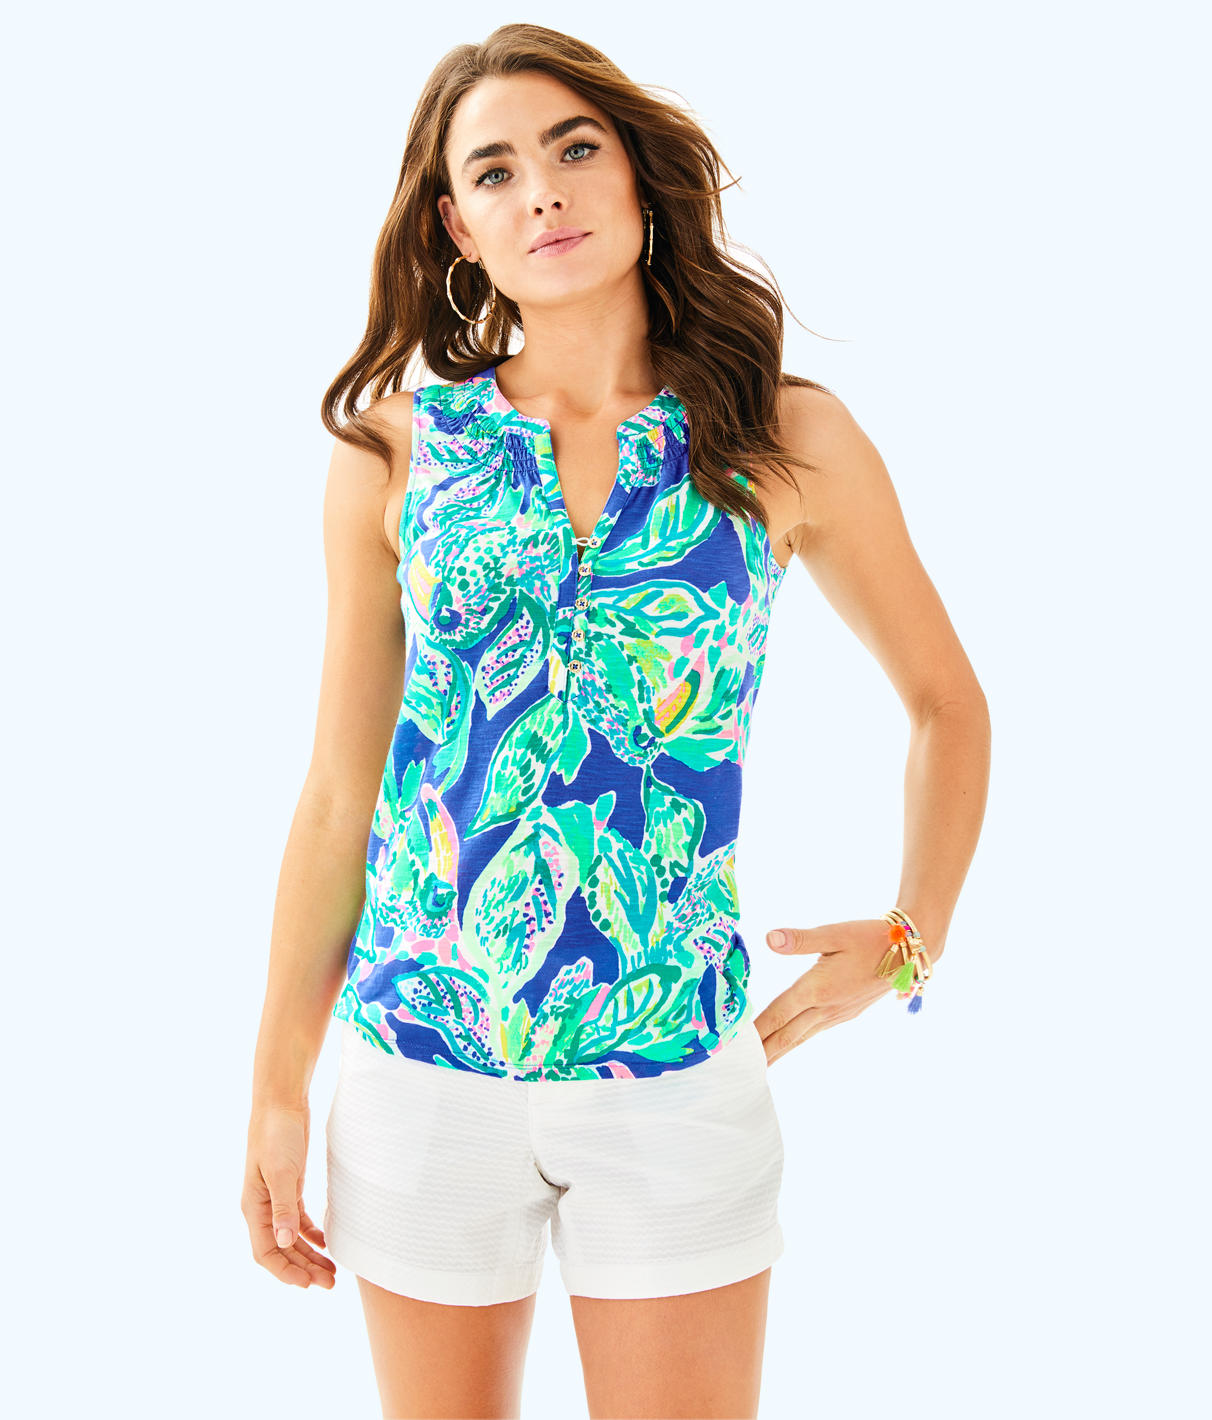 Lilly Pulitzer Lilly Pulitzer Womens Essie Top